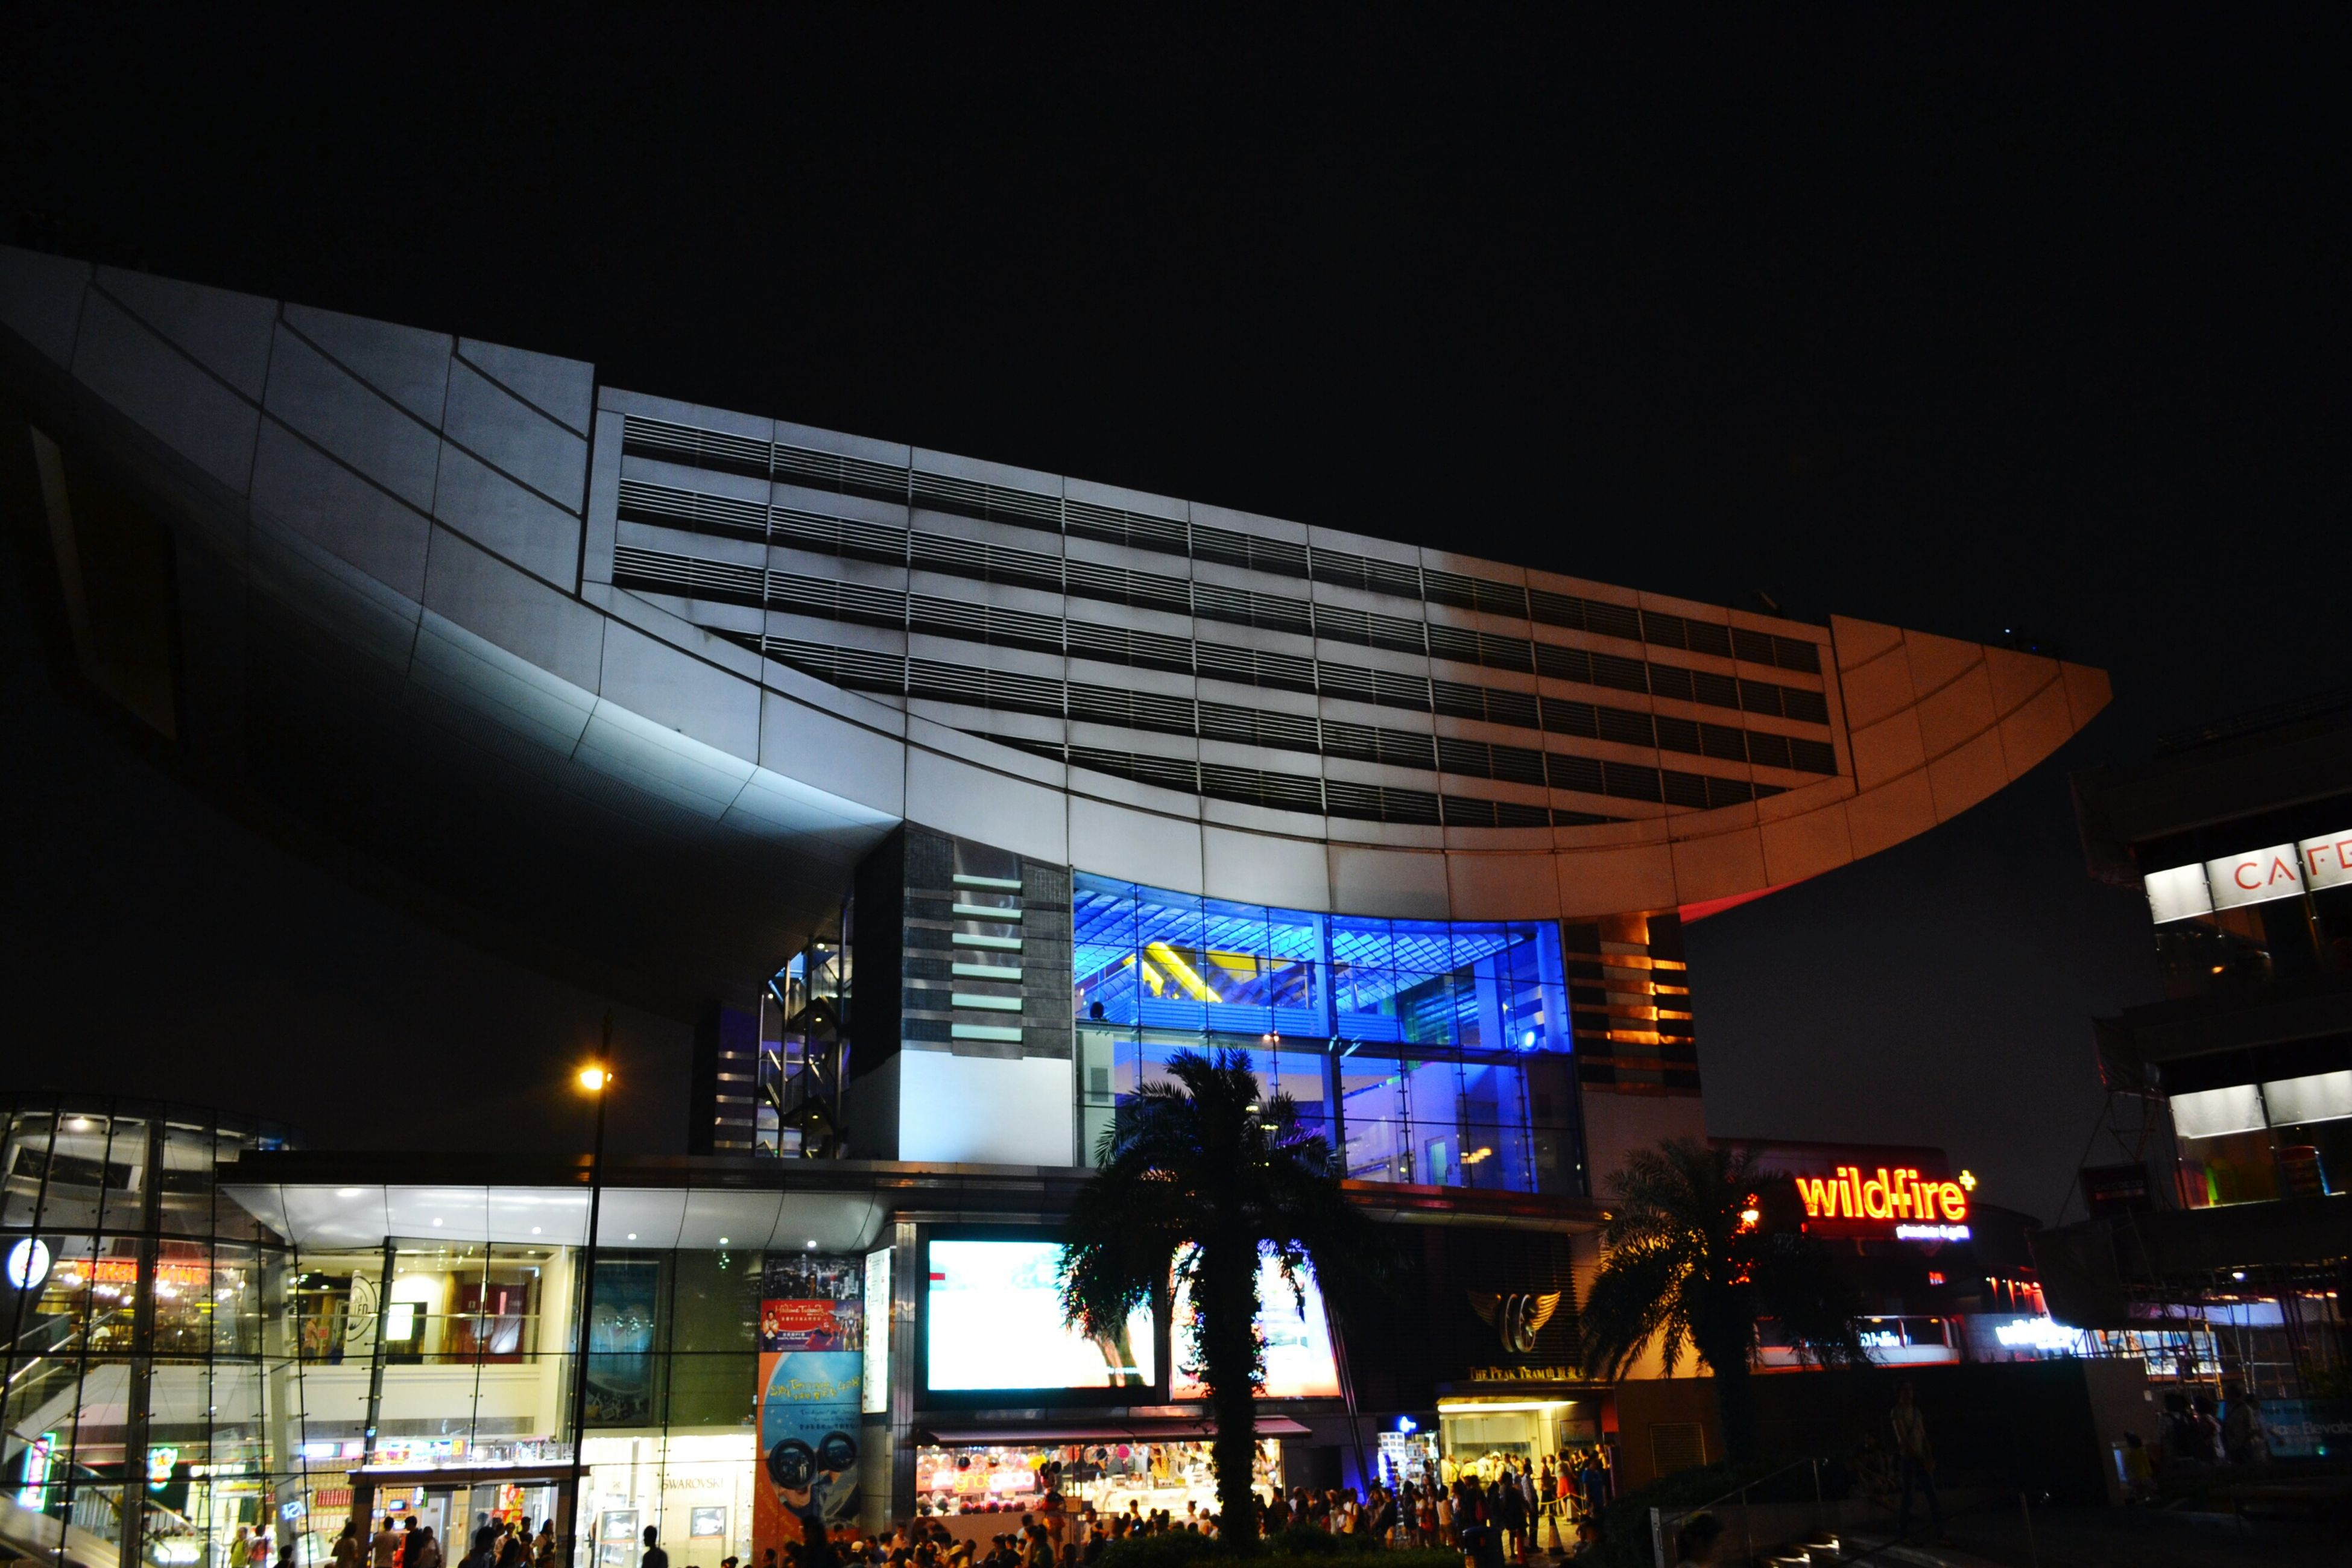 architecture, built structure, illuminated, building exterior, night, low angle view, city, modern, clear sky, building, city life, lighting equipment, text, incidental people, outdoors, sky, arts culture and entertainment, street light, transportation, copy space